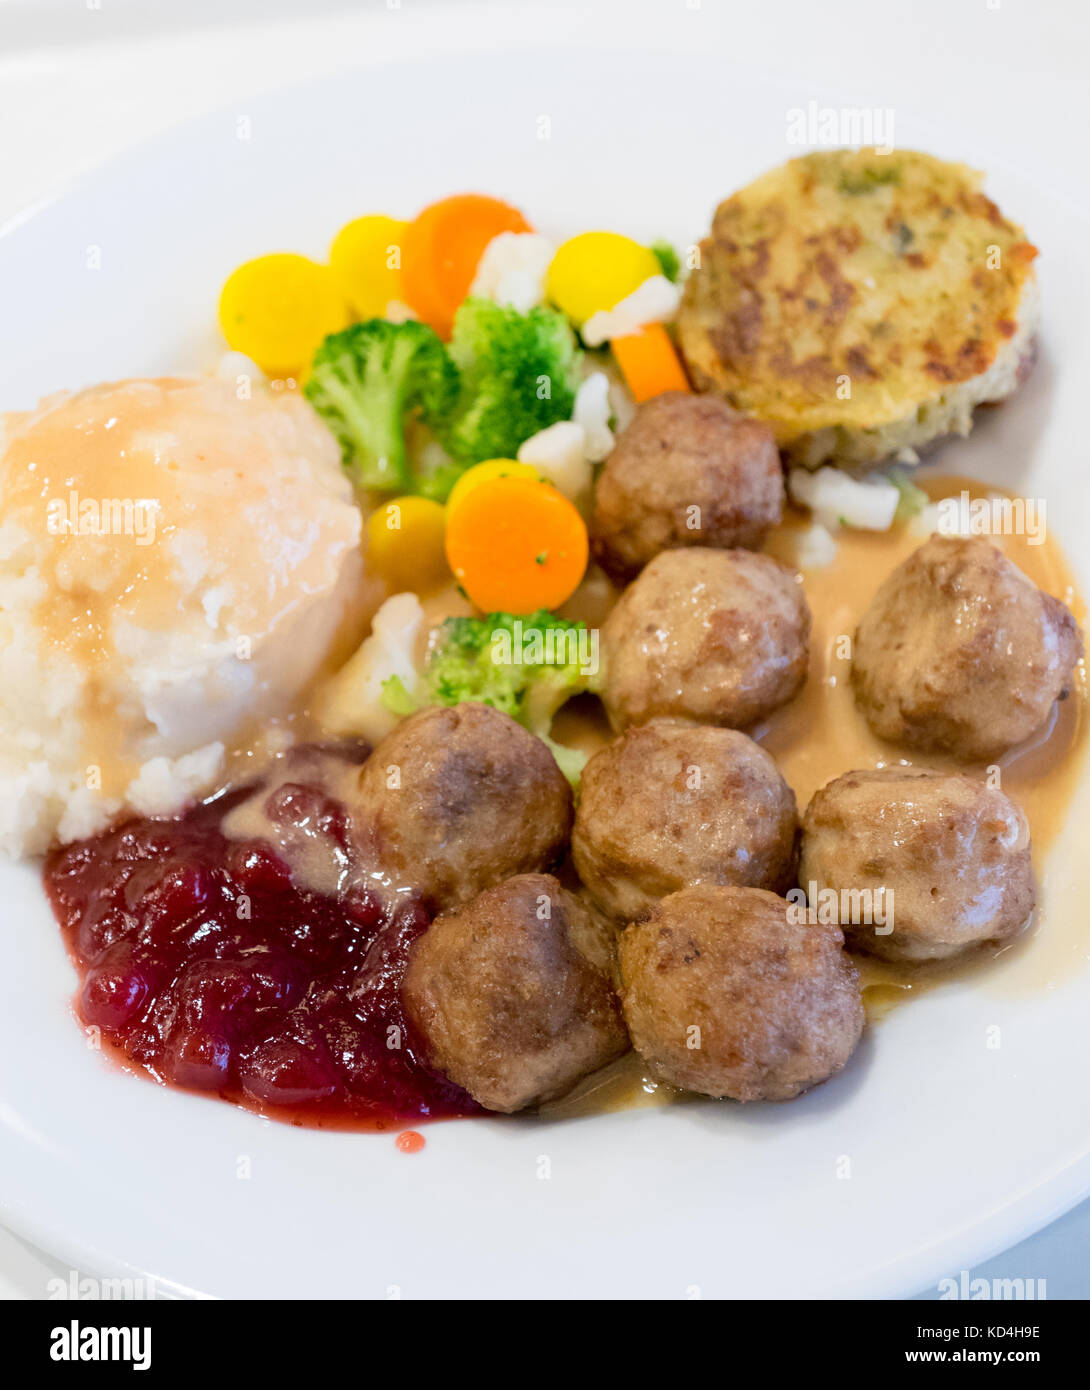 A plate of IKEA meatballs, mashed potatoes, cream gravy, lingonberry sauce, mixed vegetables and a potato-vegetable - Stock Image